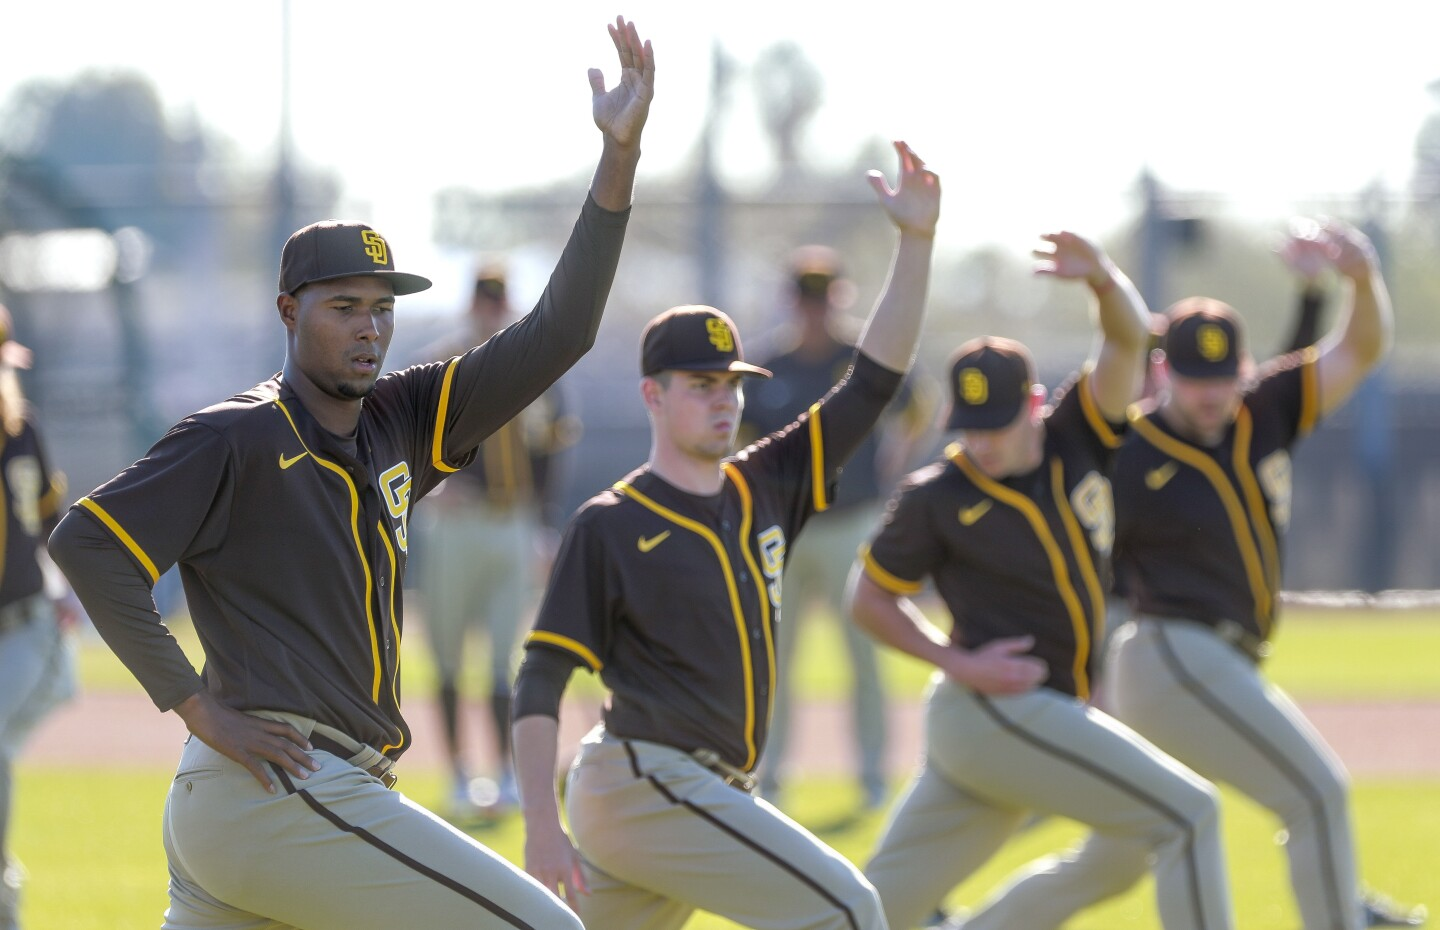 The Padres' Dauris Valdez, left, MacKenzie Gore, second from left, and other pitchers stretch on a field during Padres spring training at the Peoria Sports Complex on Thursday, February 13, 2020 in Peoria, Arizona.